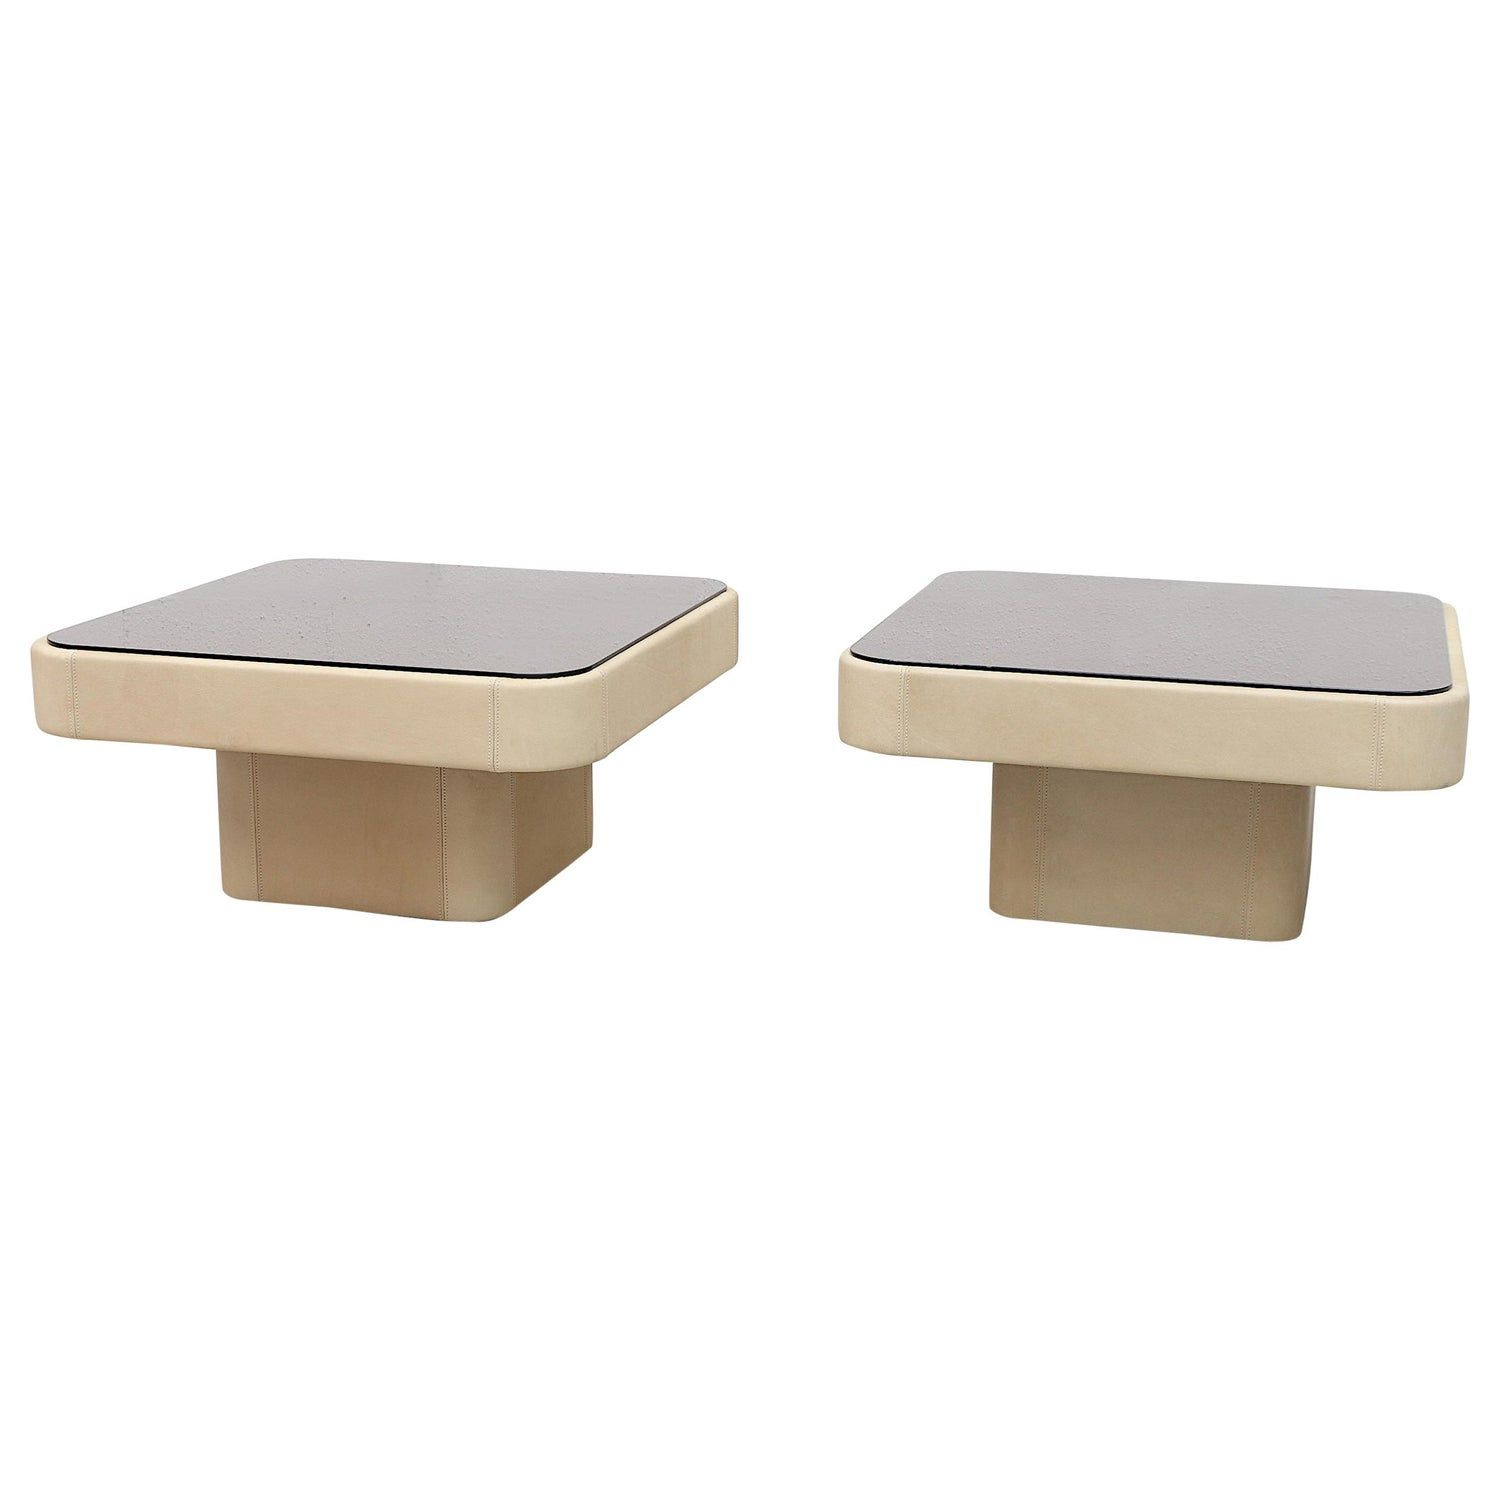 Pair Of De Sede Creme Leather Coffee Tables Leather Coffee Table Square Glass Coffee Table Glass Cocktail Tables [ 1500 x 1500 Pixel ]